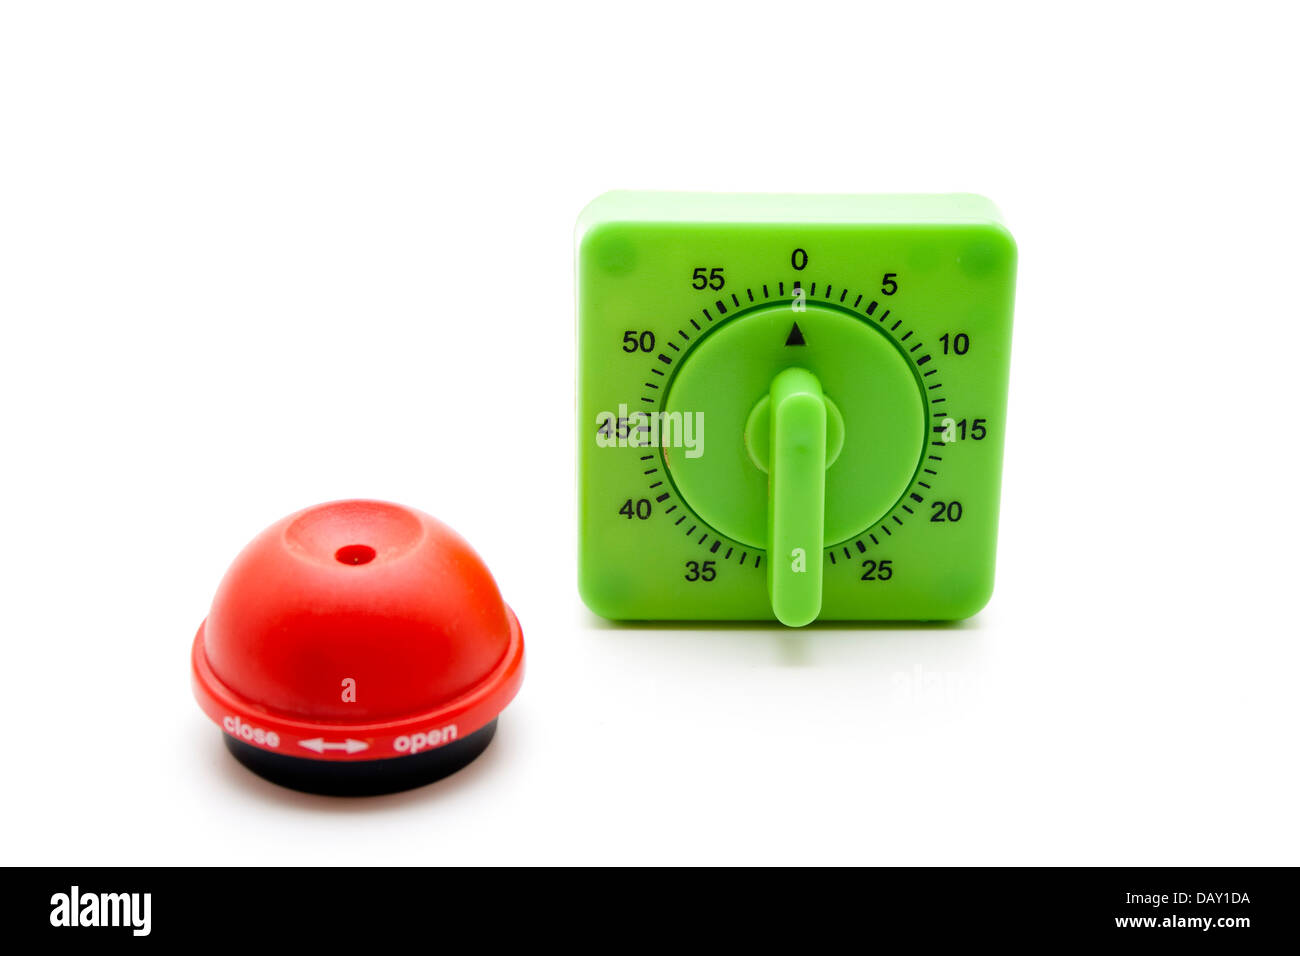 Egg timer with egg spike - Stock Image